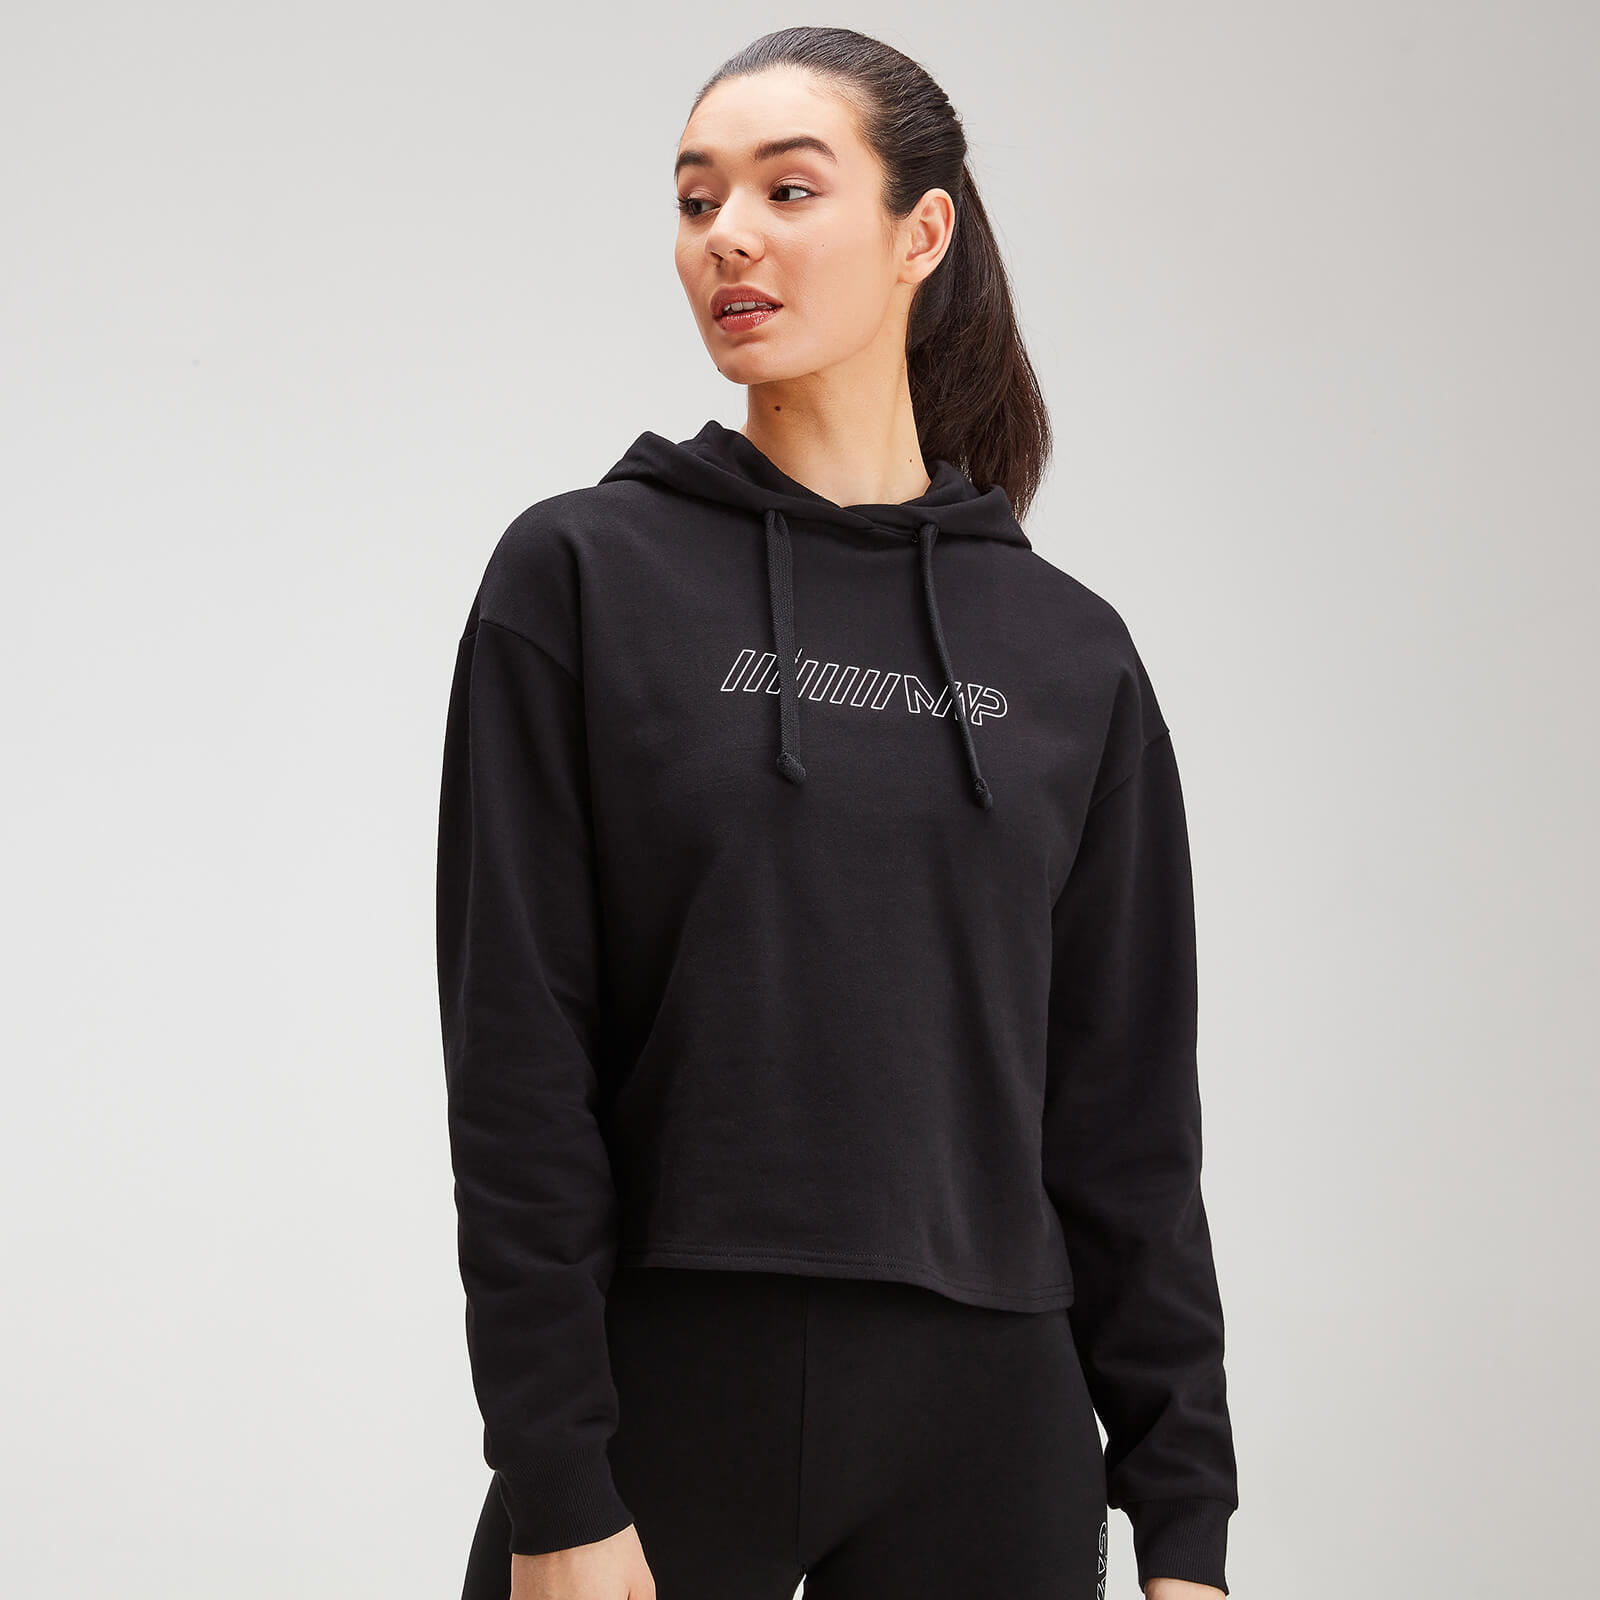 MP Women's Outline Graphic Hoodie - Black - S